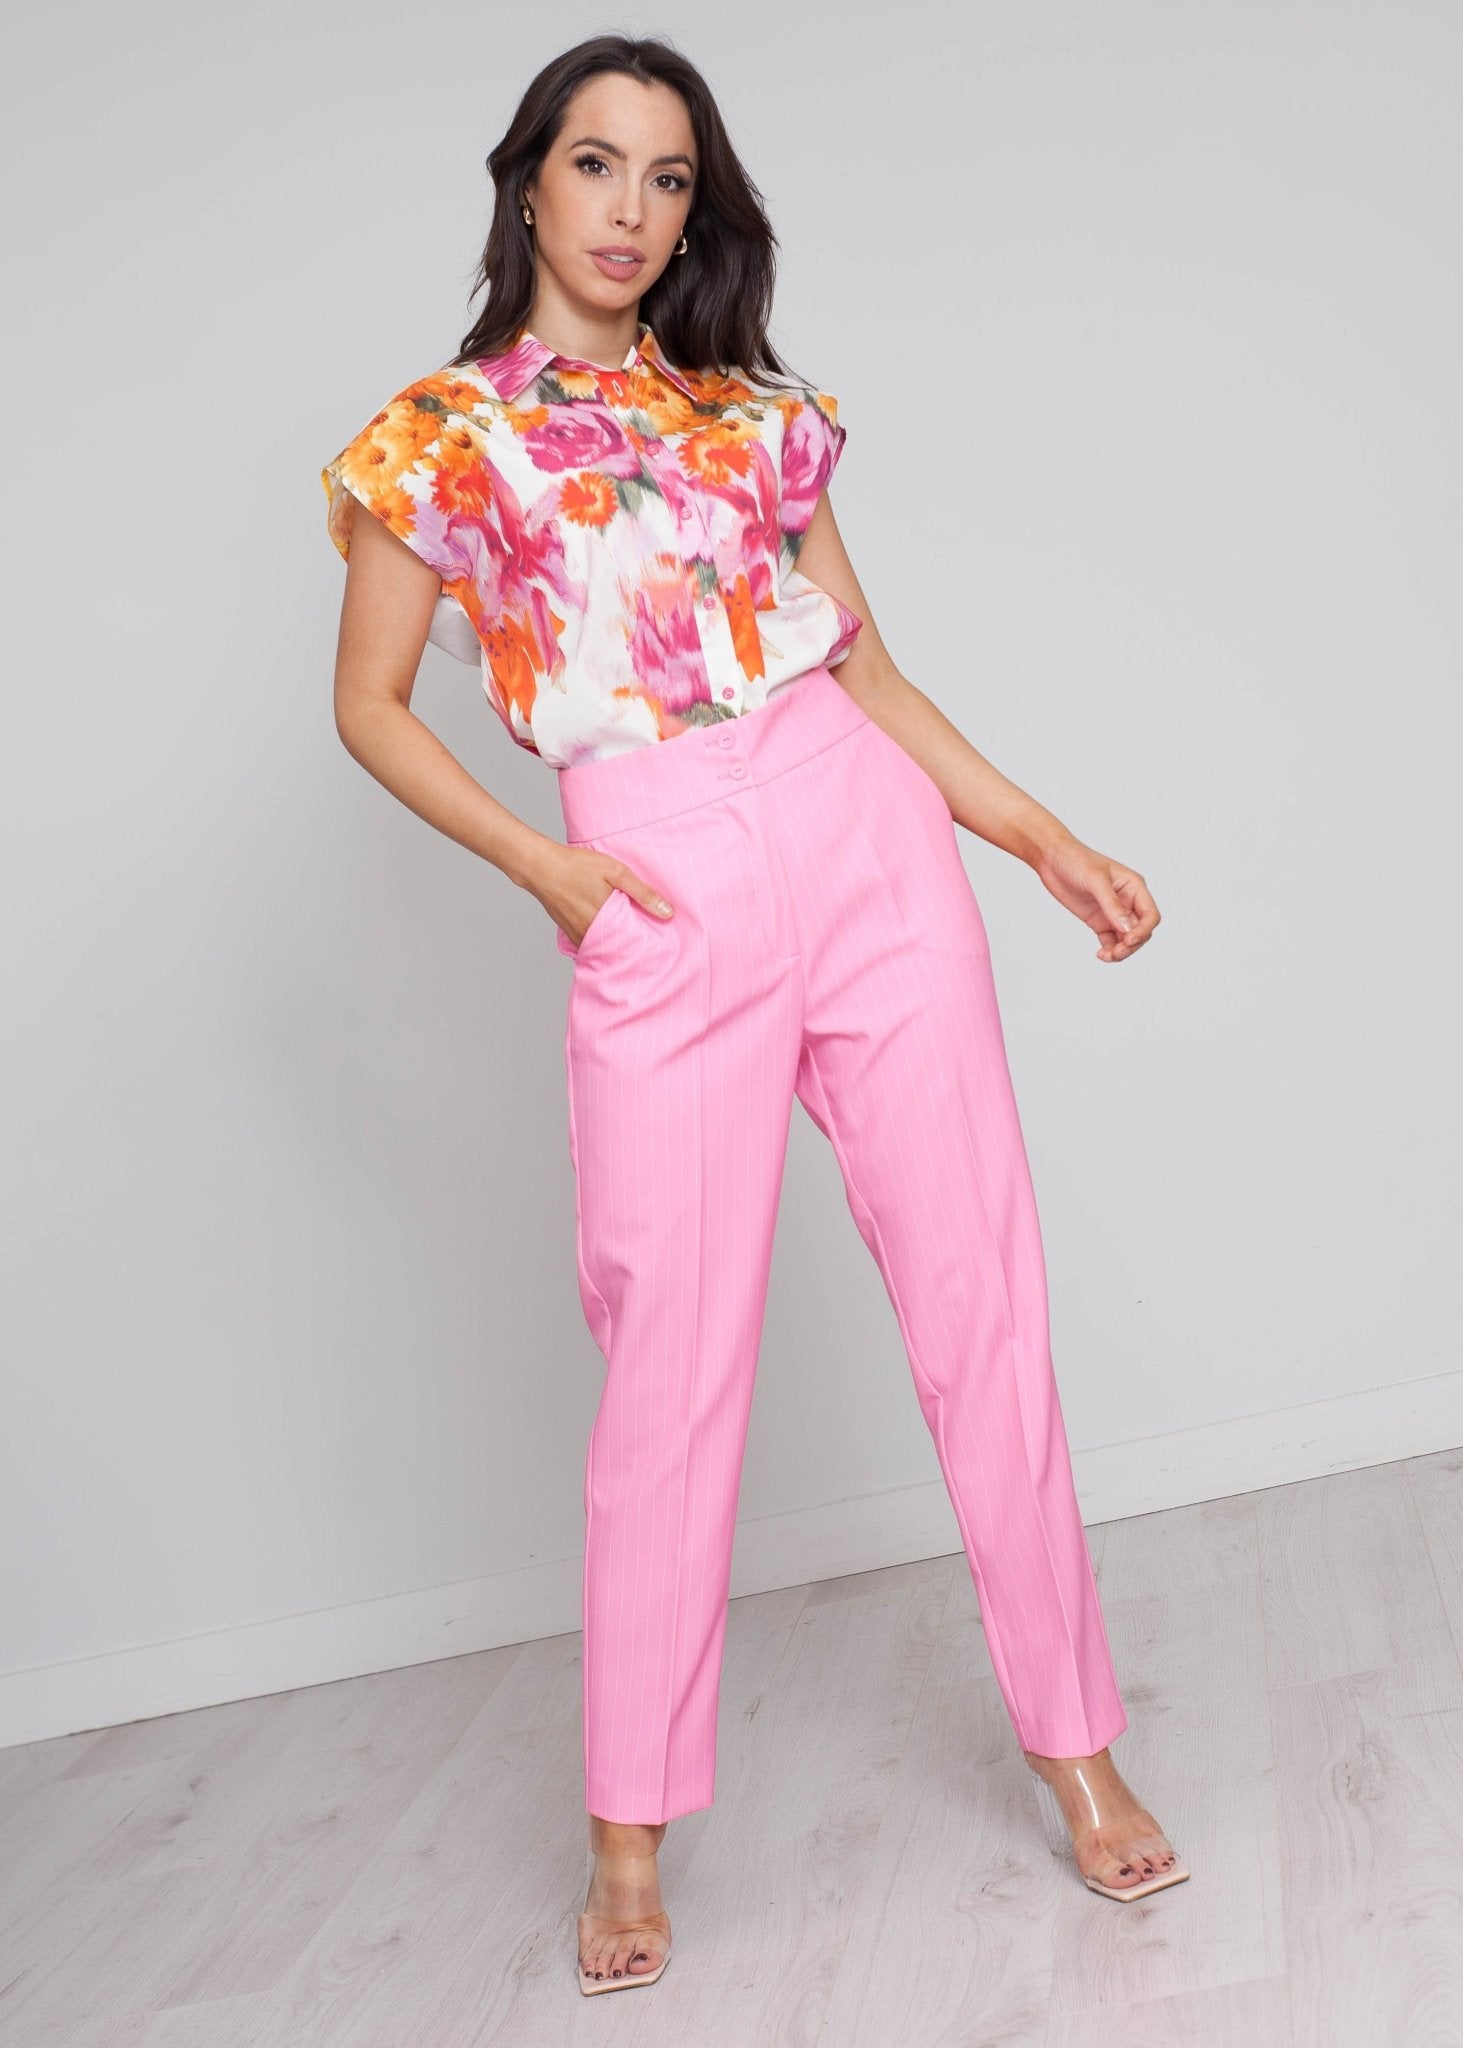 Alana Floral Print Shirt In Pink Mix - The Walk in Wardrobe